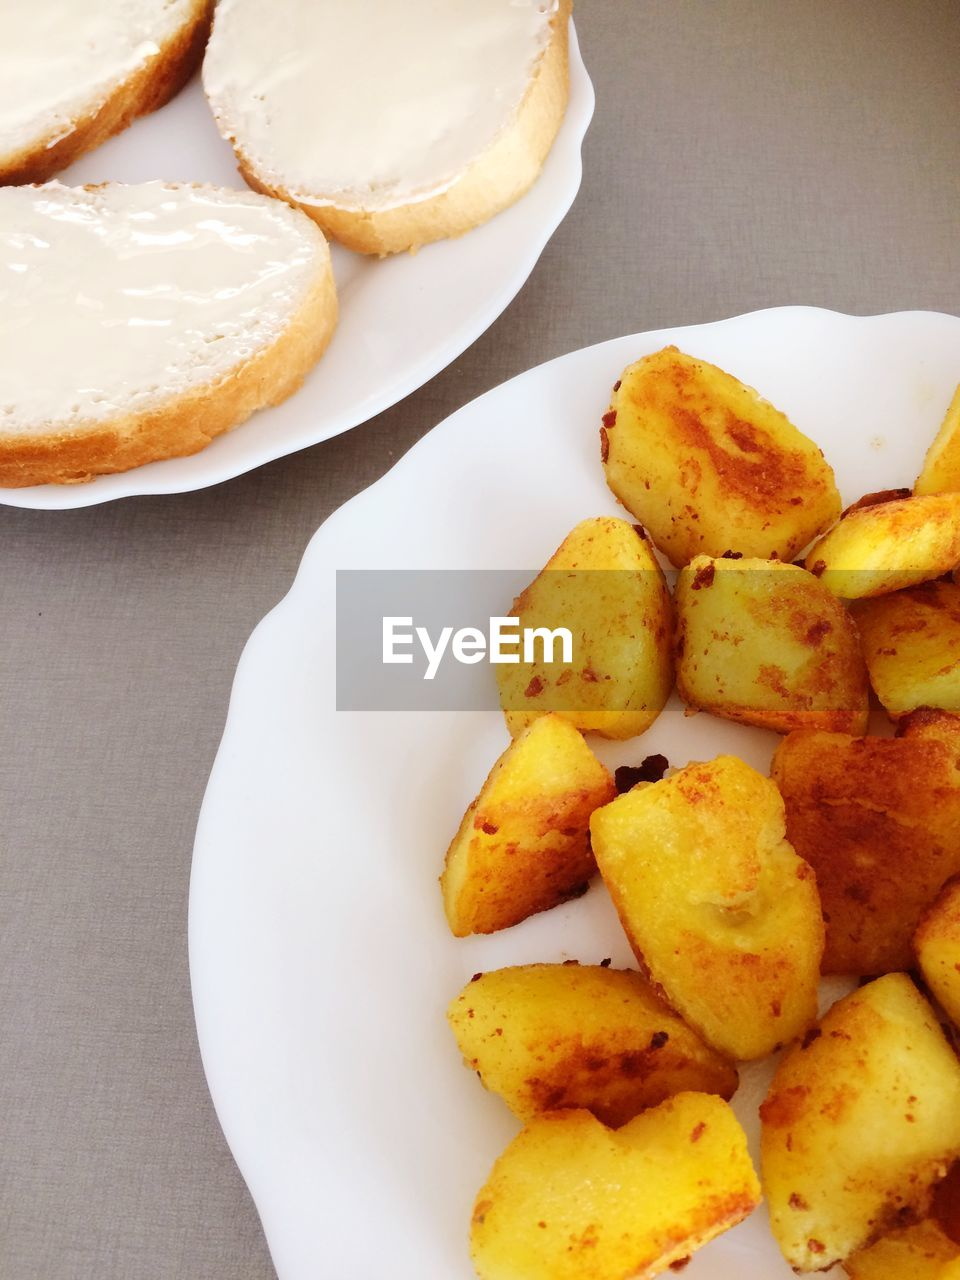 food, food and drink, freshness, ready-to-eat, still life, plate, indoors, table, high angle view, no people, serving size, potato, close-up, fried, prepared potato, unhealthy eating, indulgence, directly above, wellbeing, temptation, snack